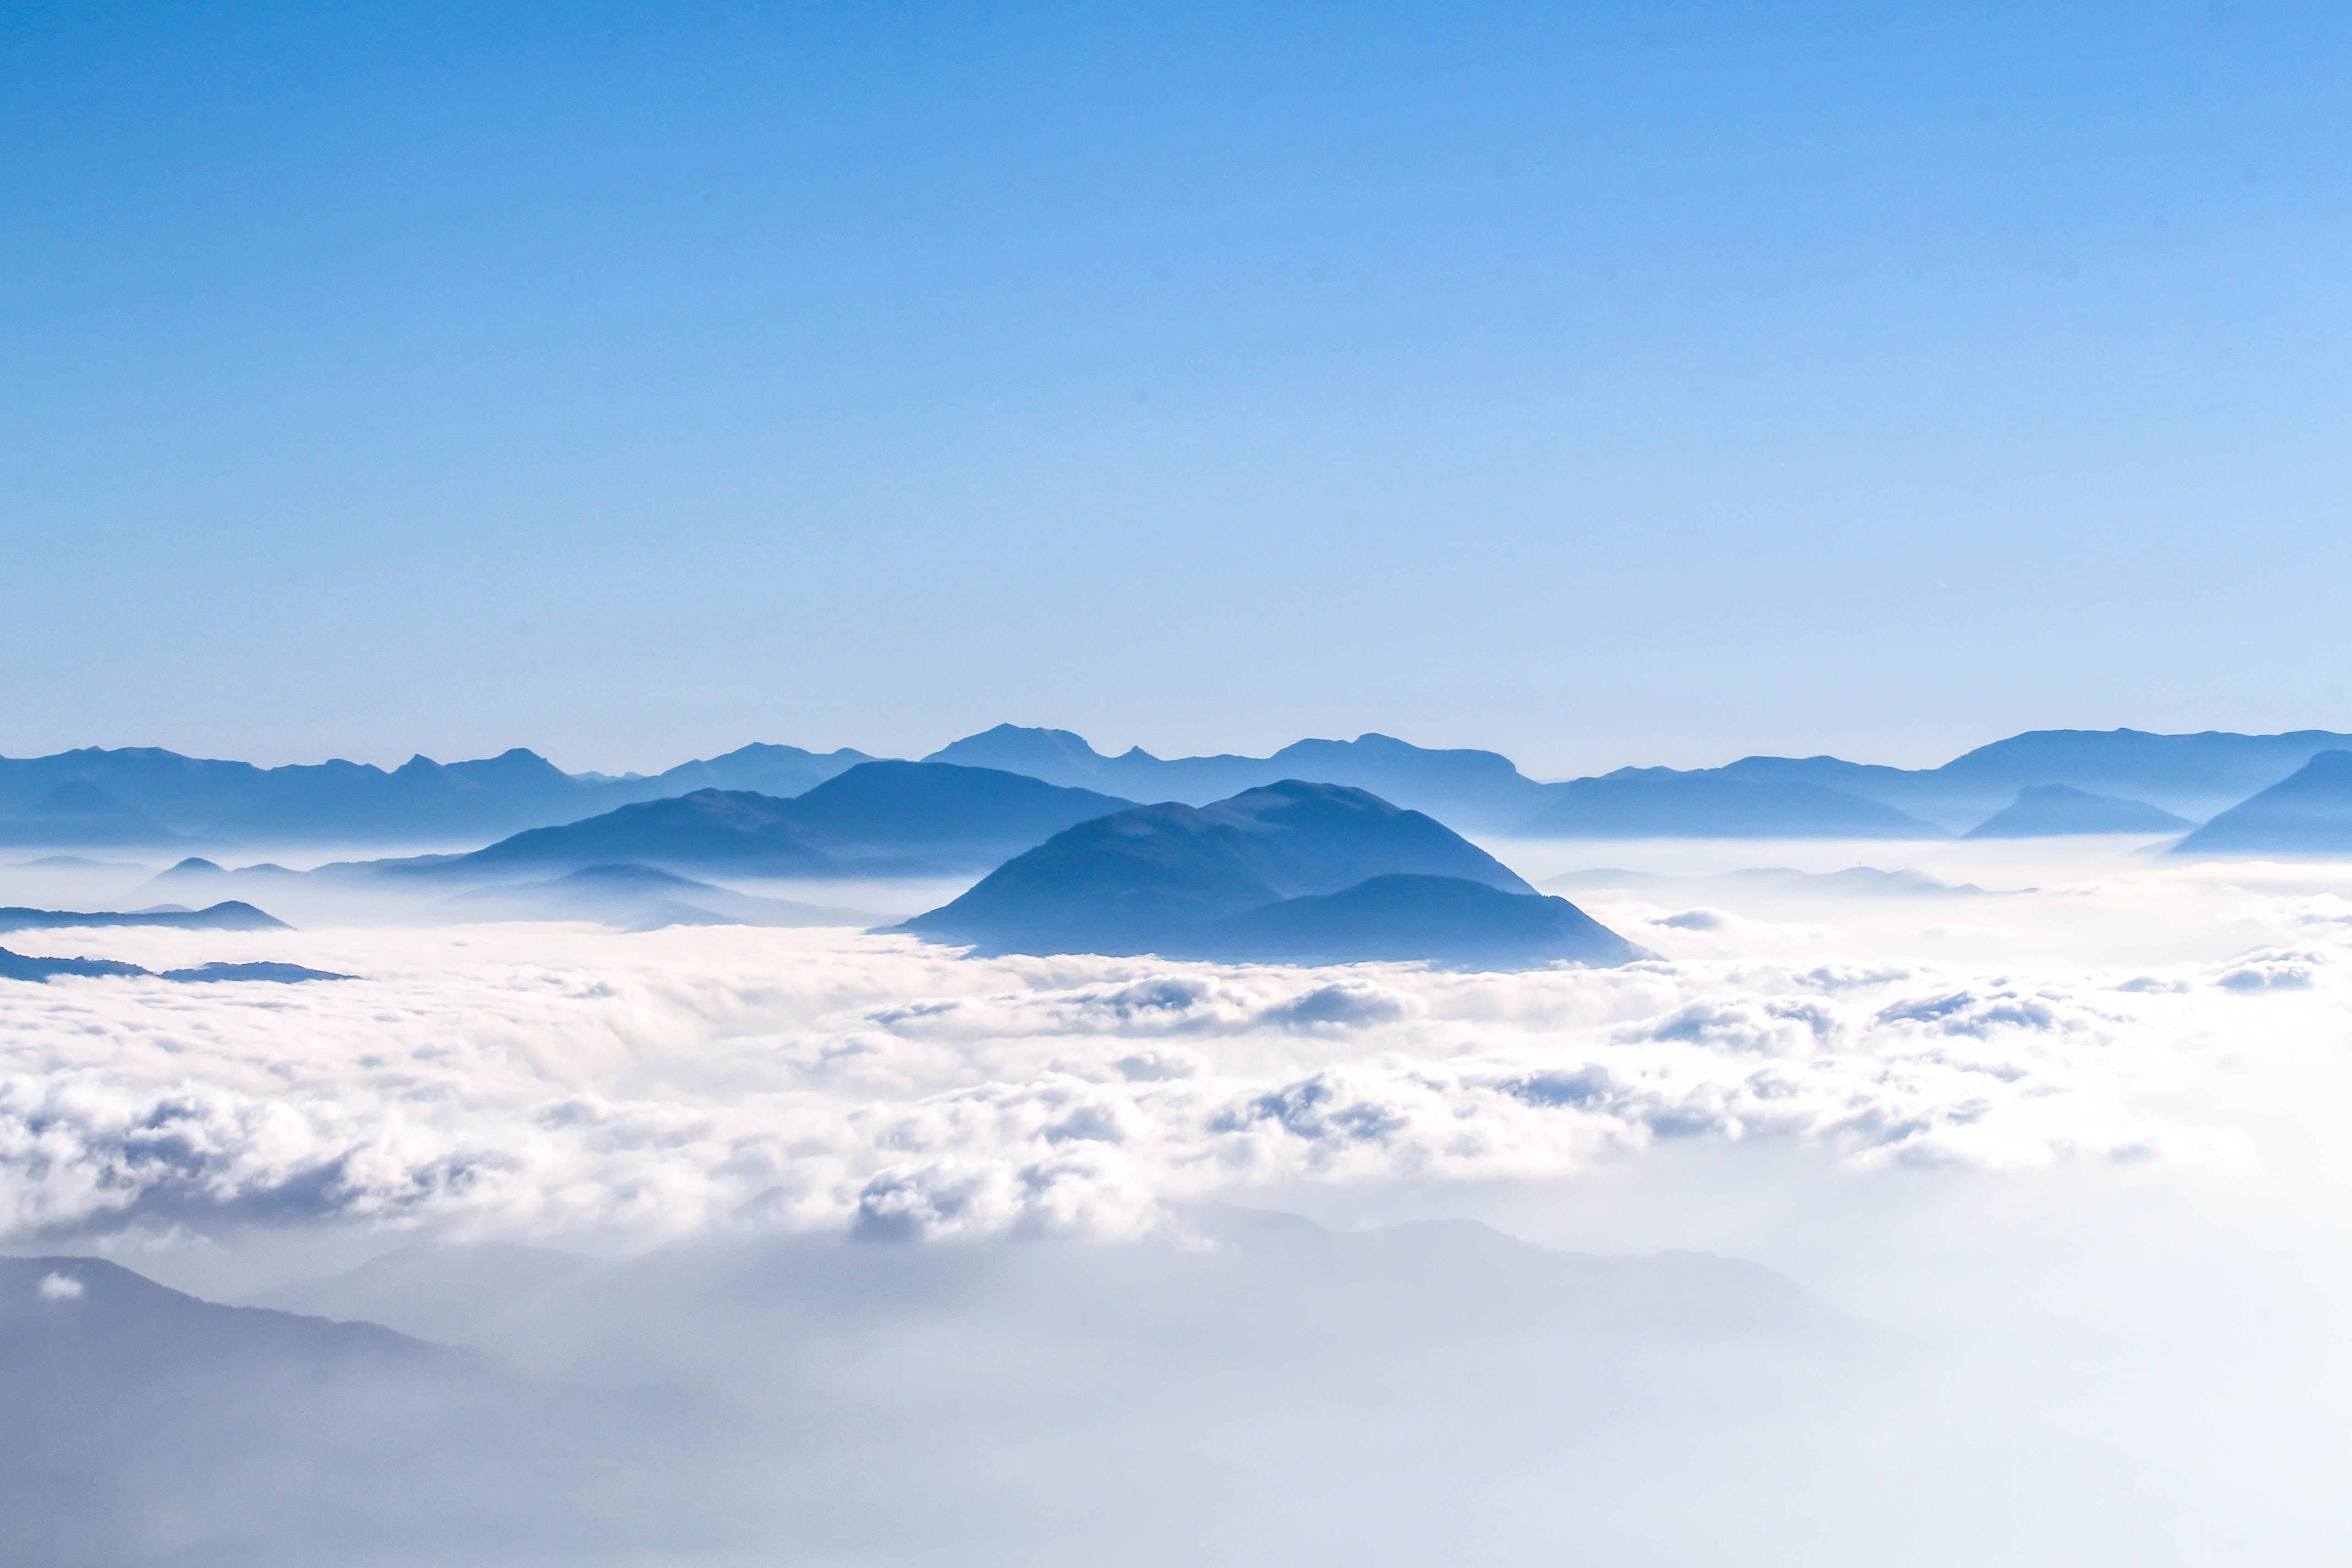 The crest of the Dent de Crolles mountain jutting out from a sea of clouds